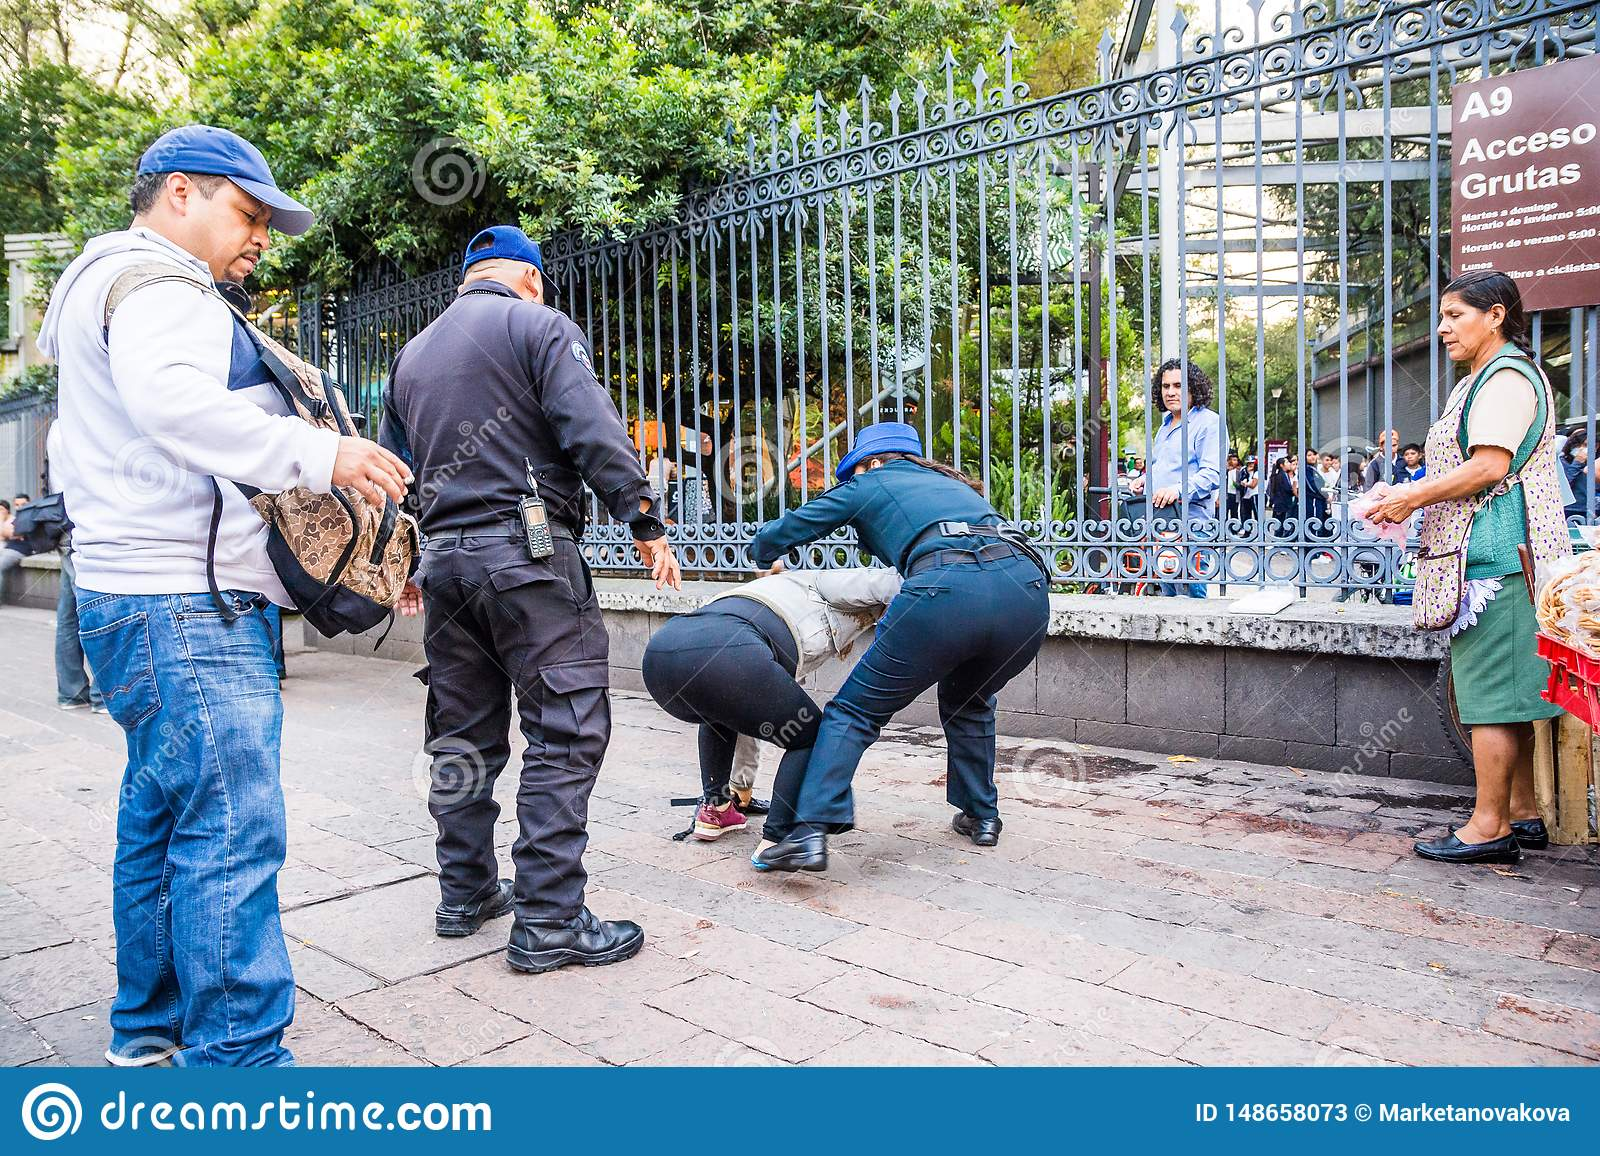 Mexico City, Mexico - October 25, 2018. Police officers arresting woman